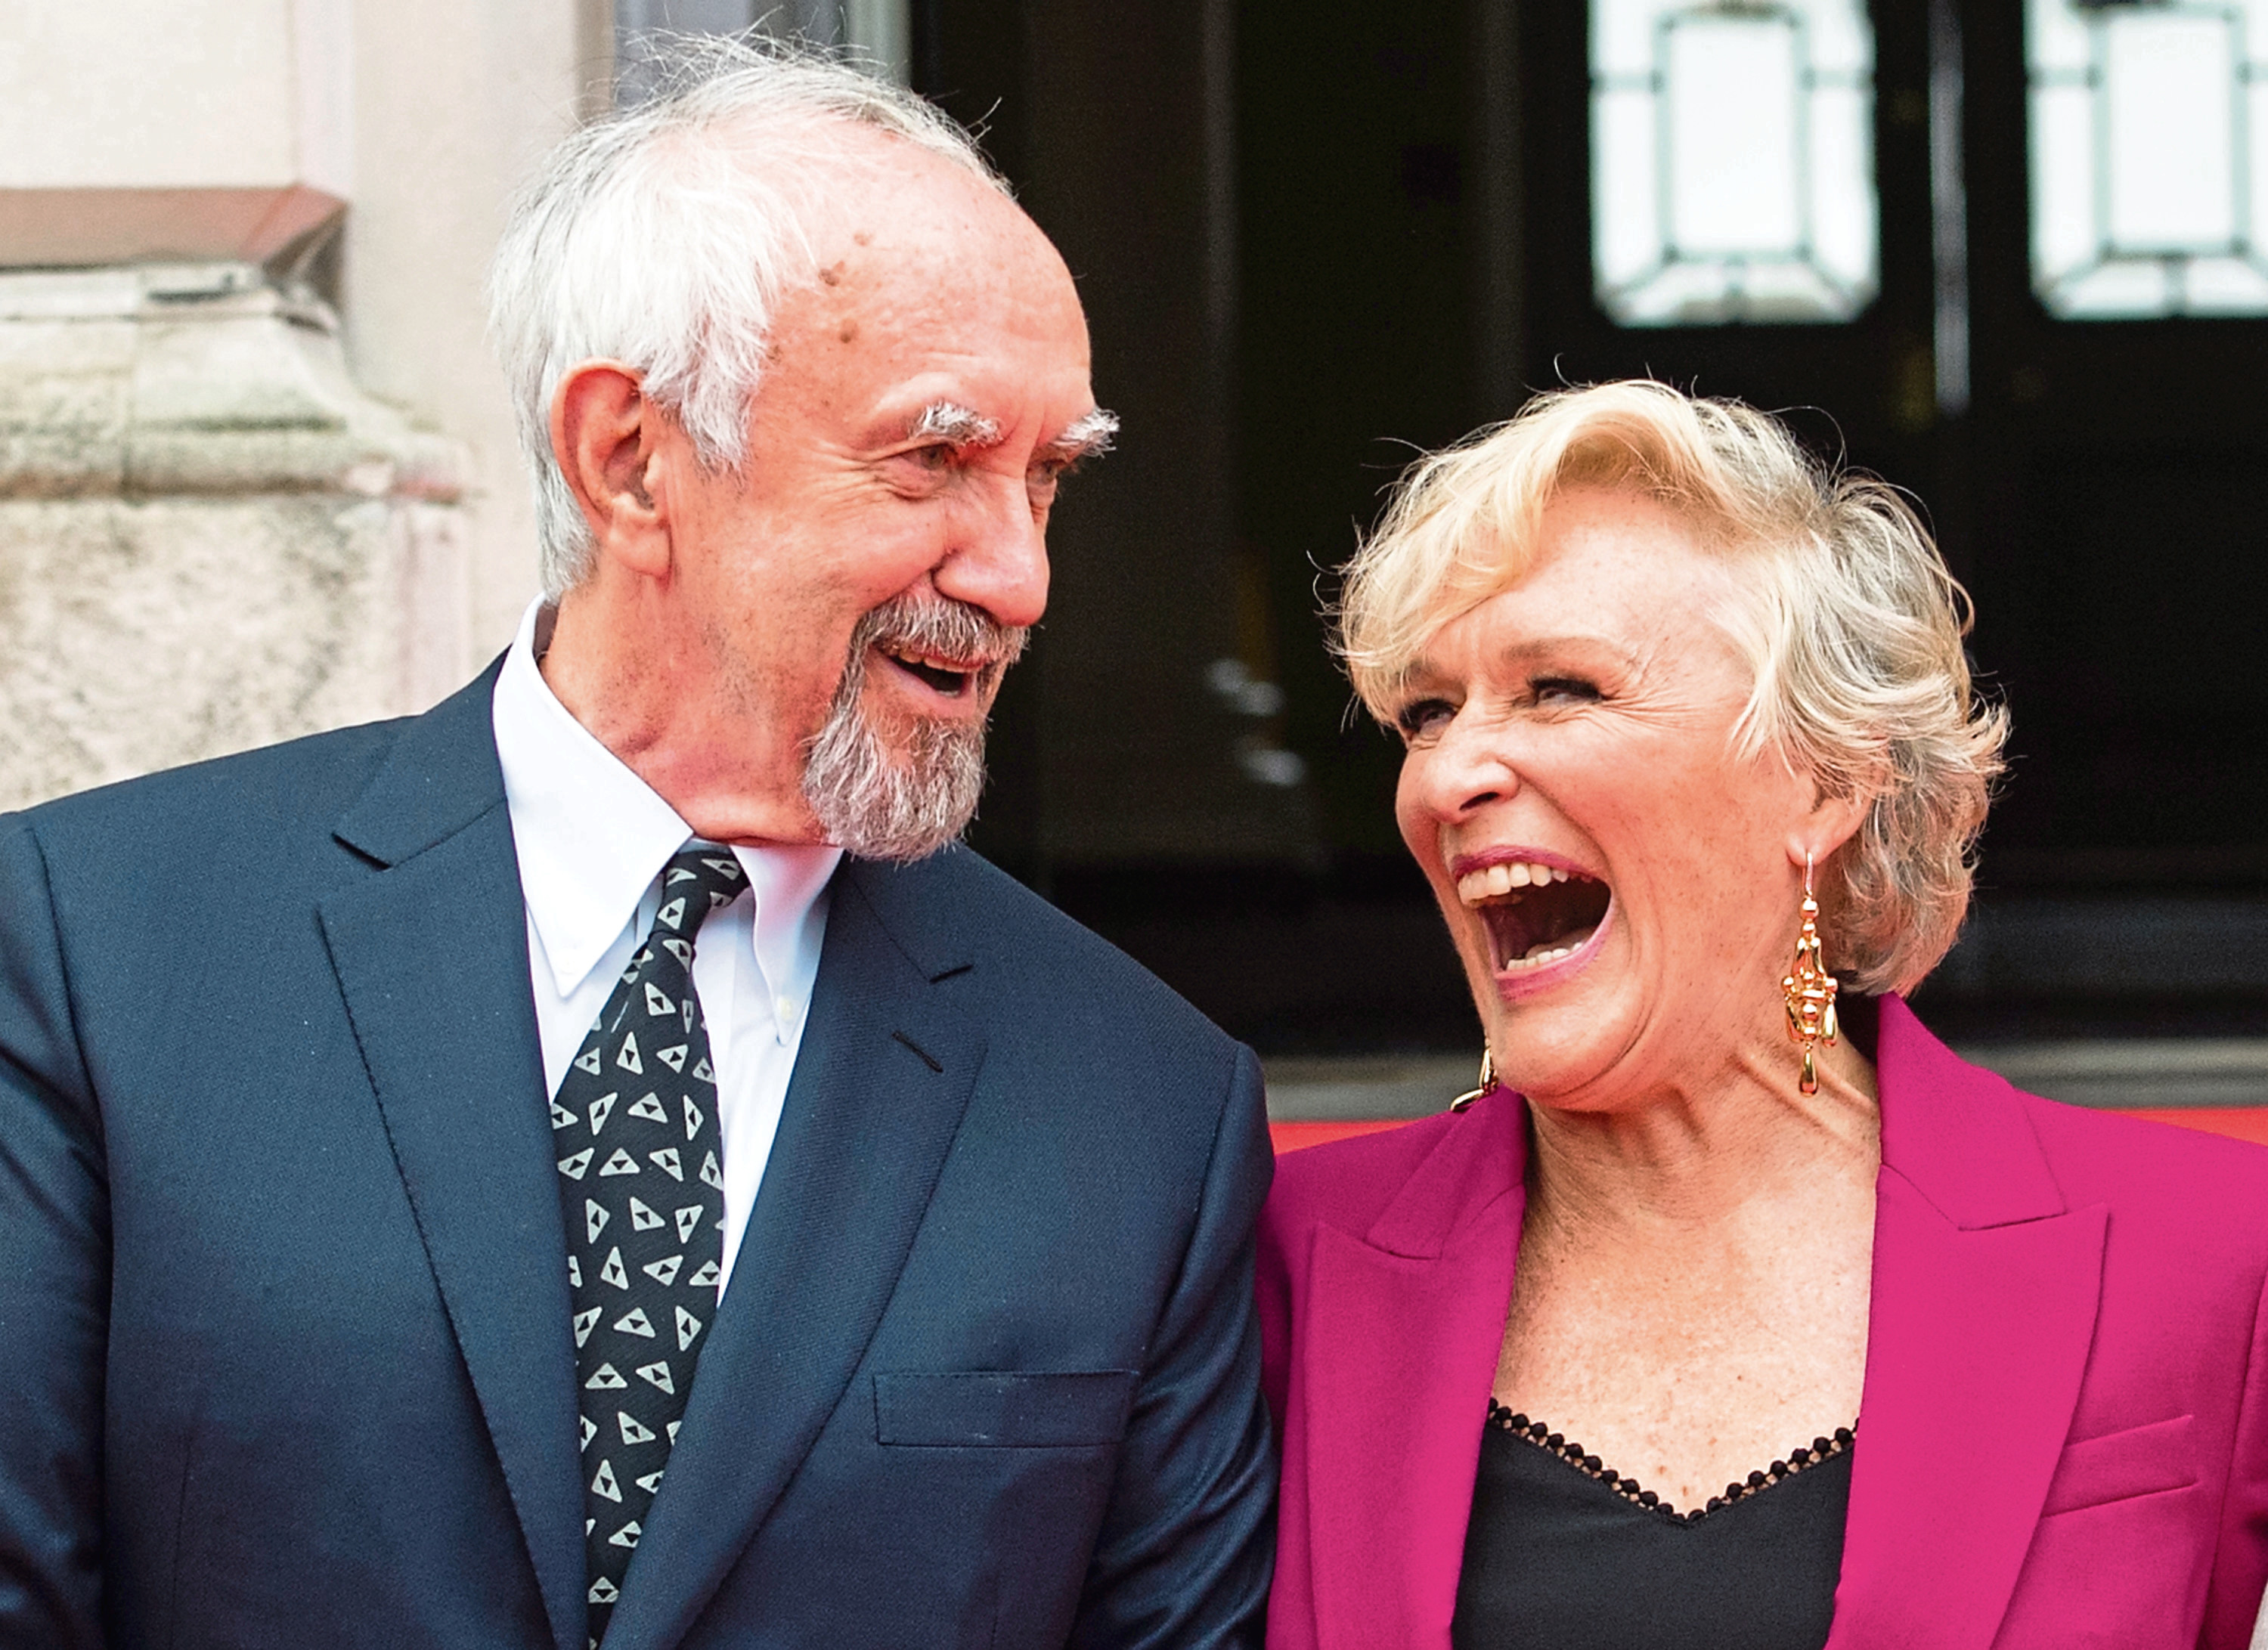 Jonathan Pryce and Glenn Close attend the UK Premiere of 'The Wife'. (Samir Hussein).